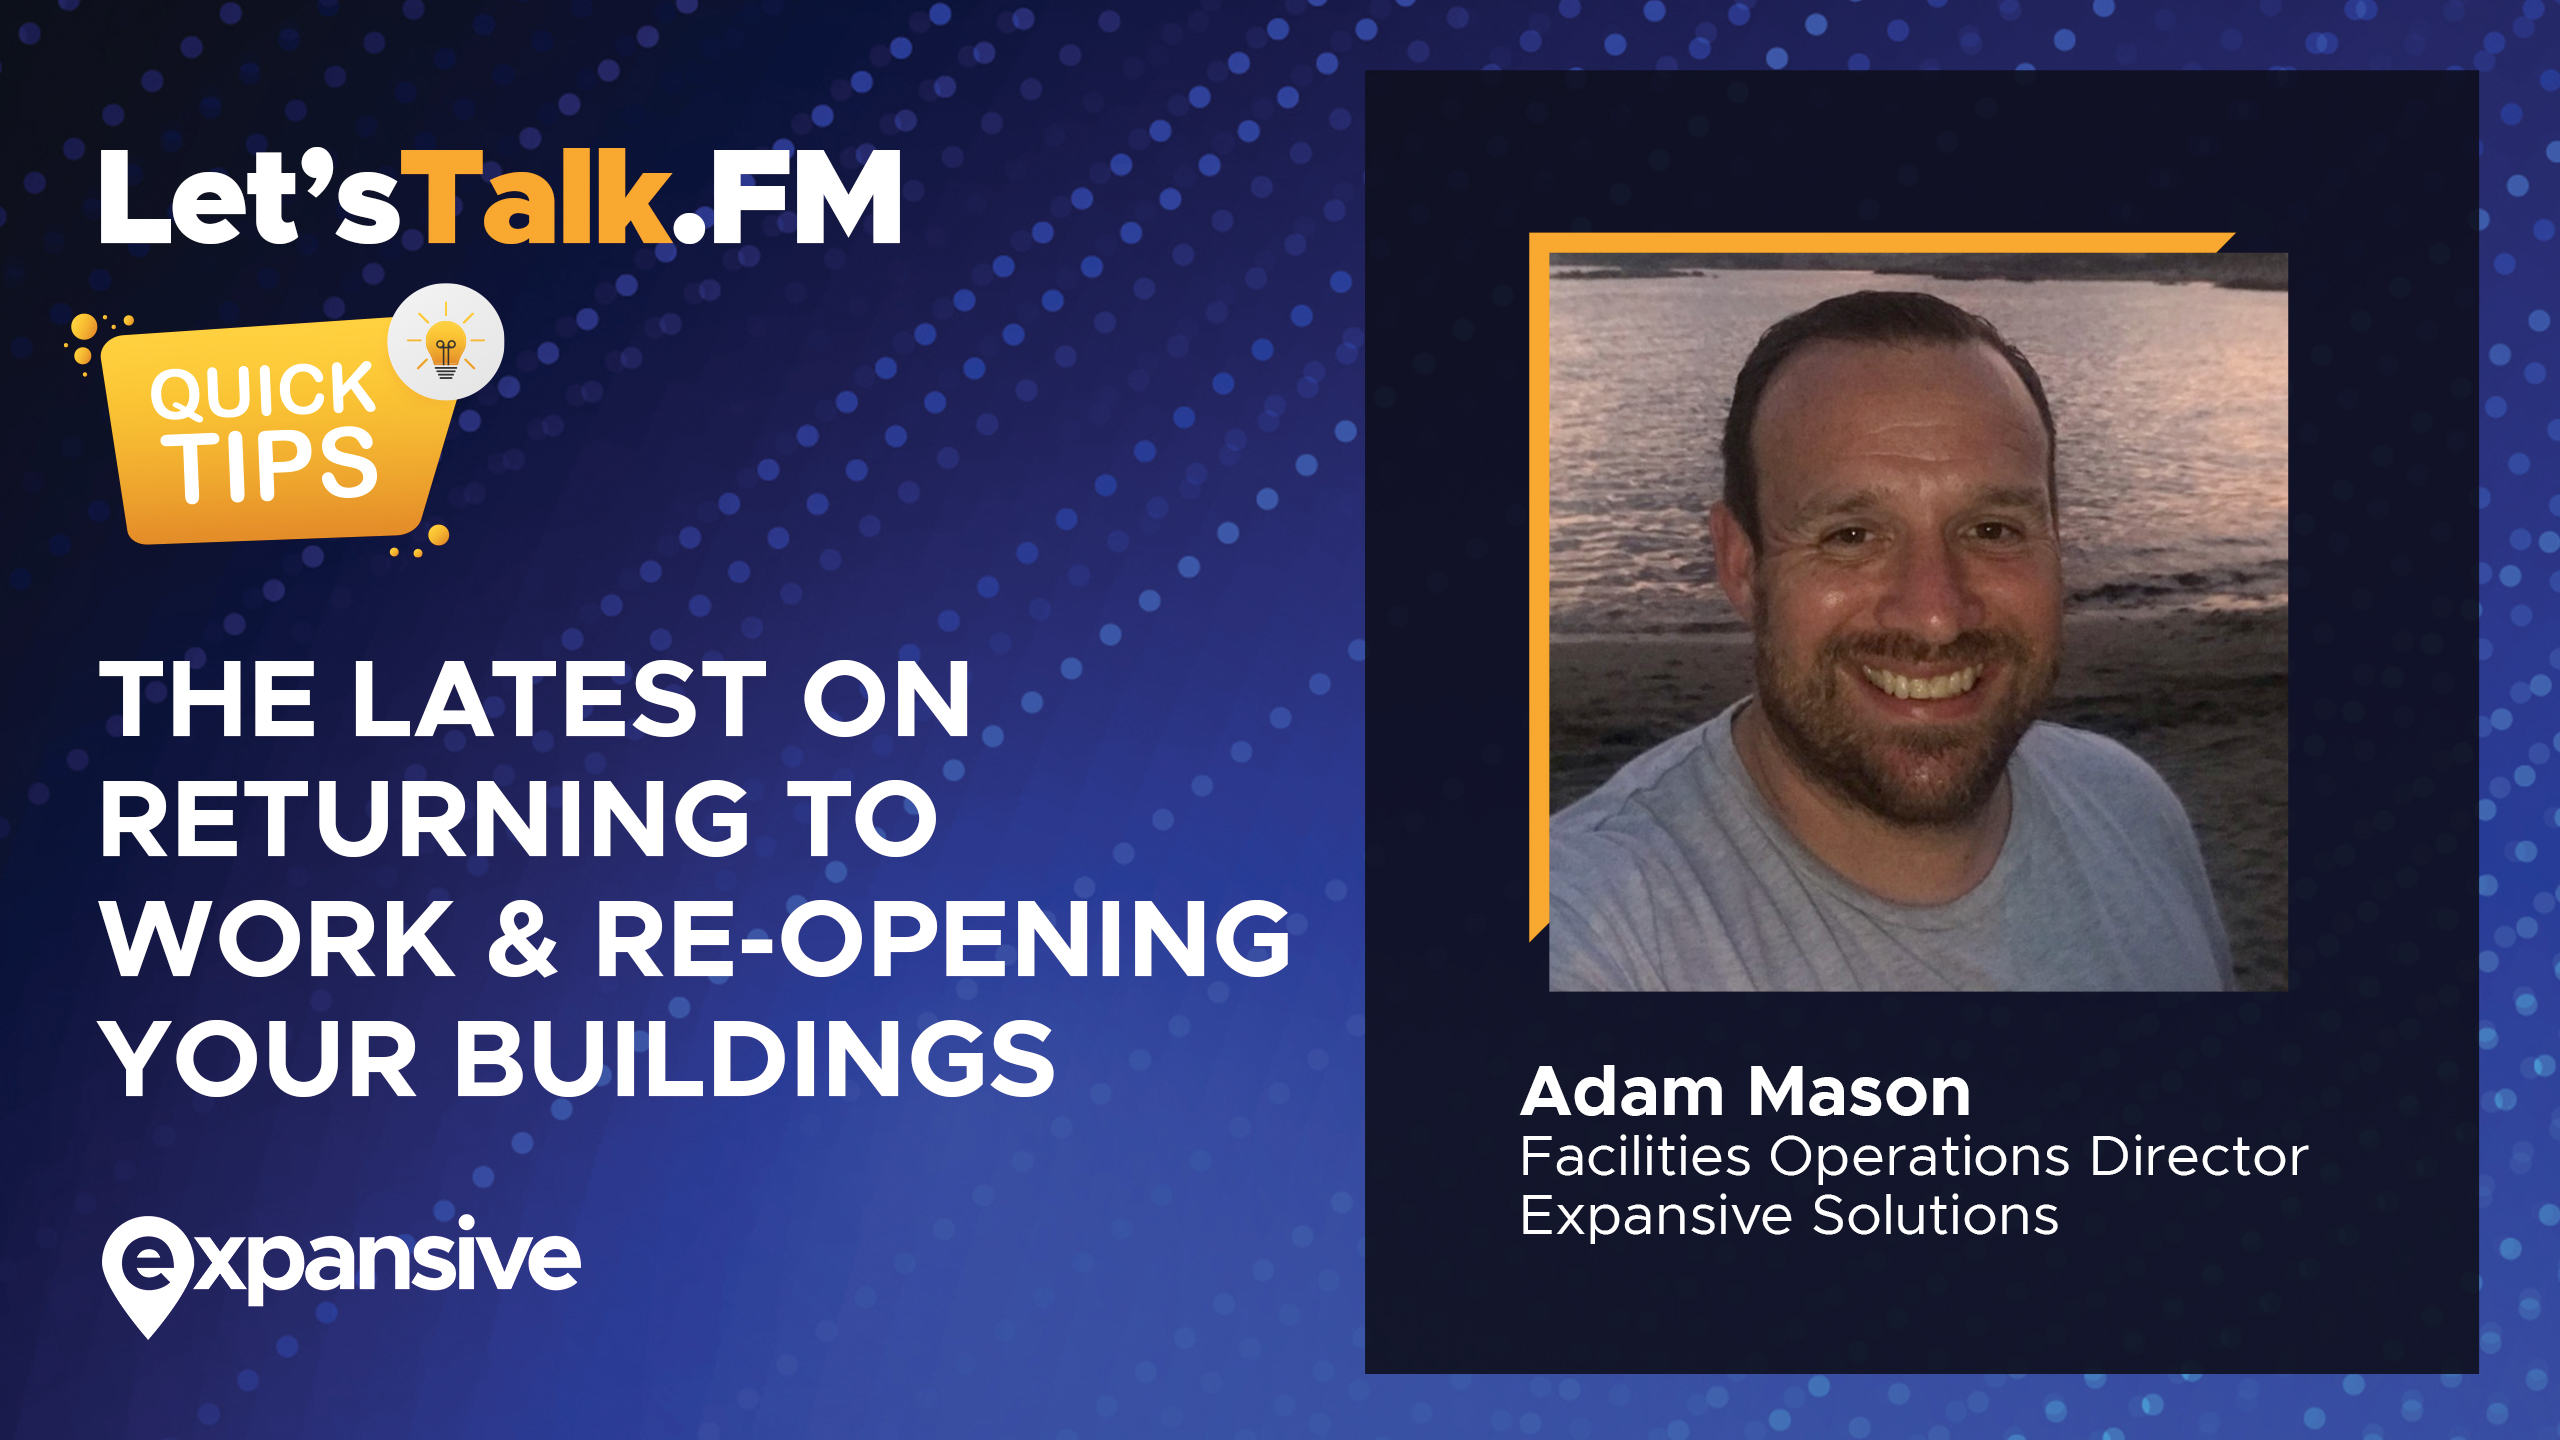 The latest on re-opening buildings and returning to work